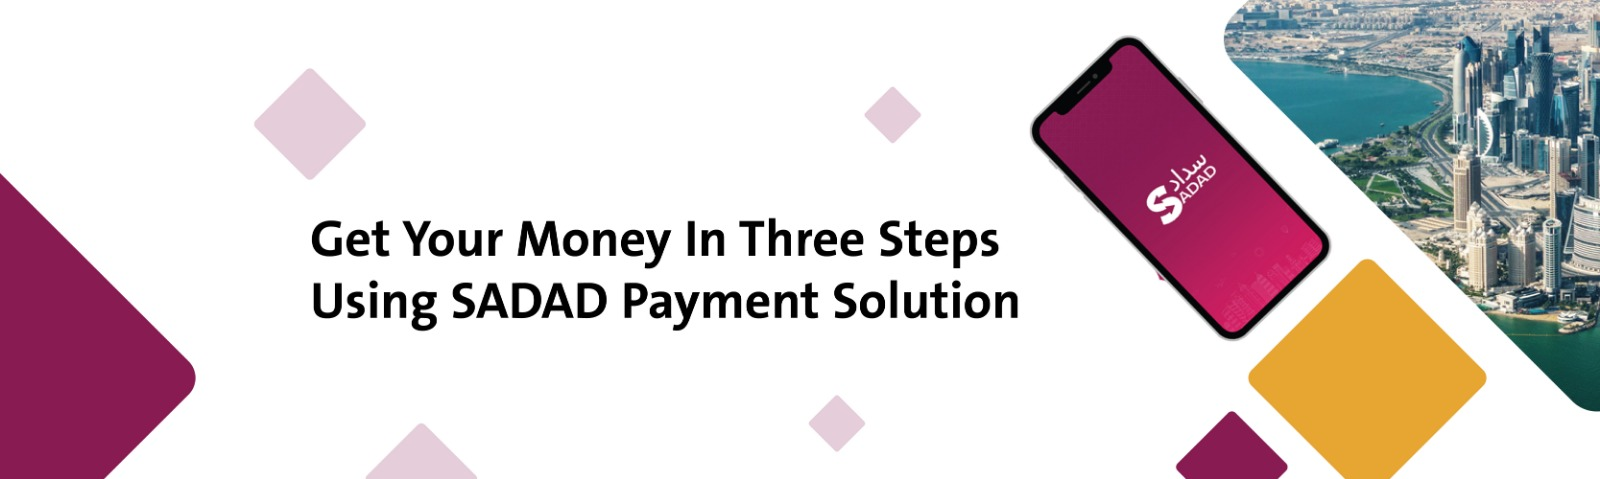 Get Your Money In Three Steps Using SADAD Payment Solution